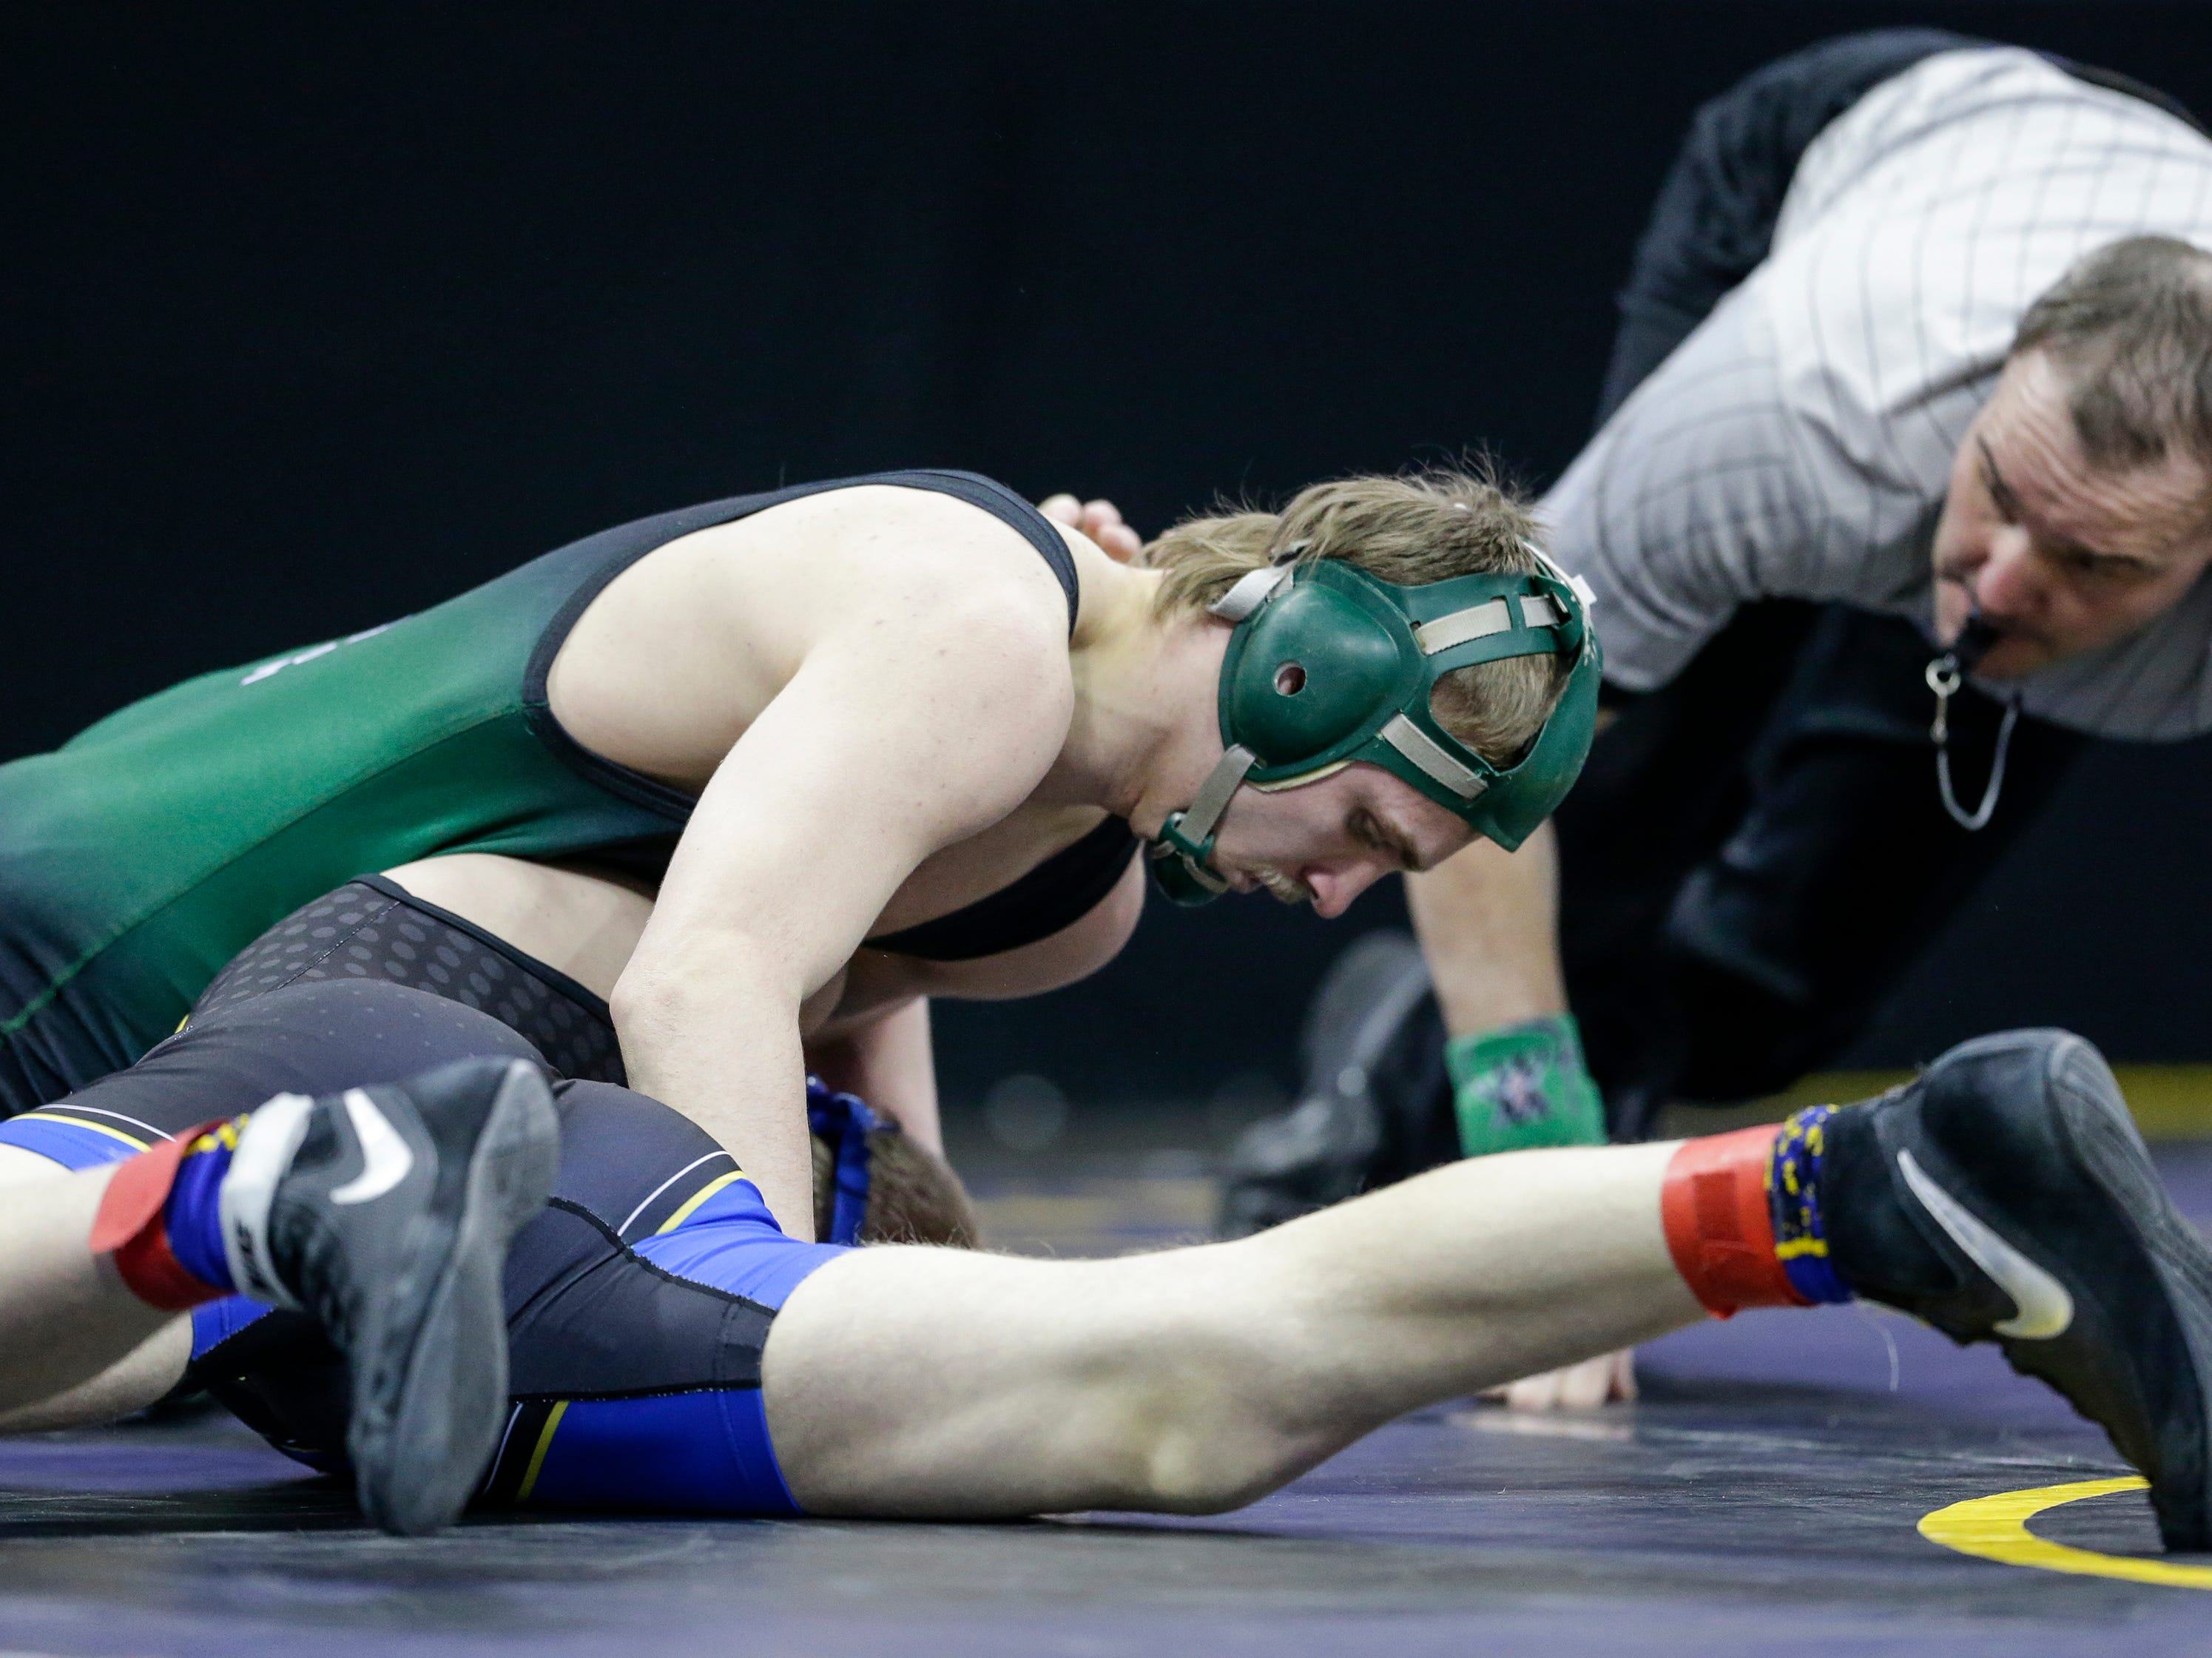 Shioctin's Billy Reif wrestles Shell Lake's Cory Kidder in a Division 3 160-pound weight class preliminary match during the WIAA state individual wrestling tournament at the Kohl Center Thursday, February 21, 2019, in Madison, Wis.